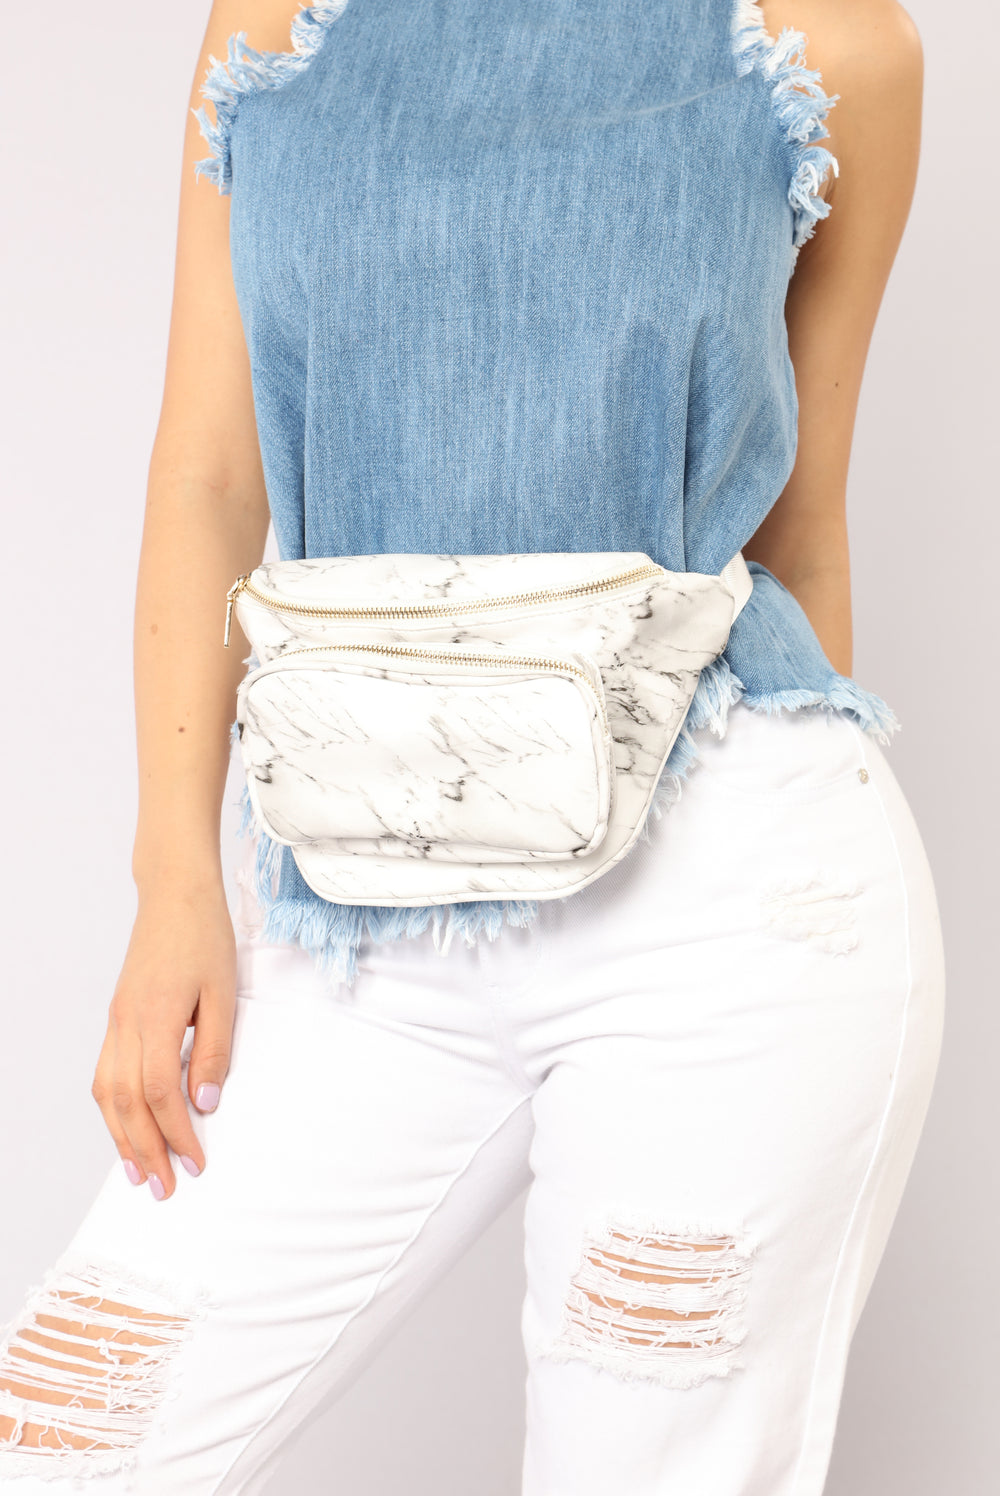 Wild Style Marble Fanny Pack - White